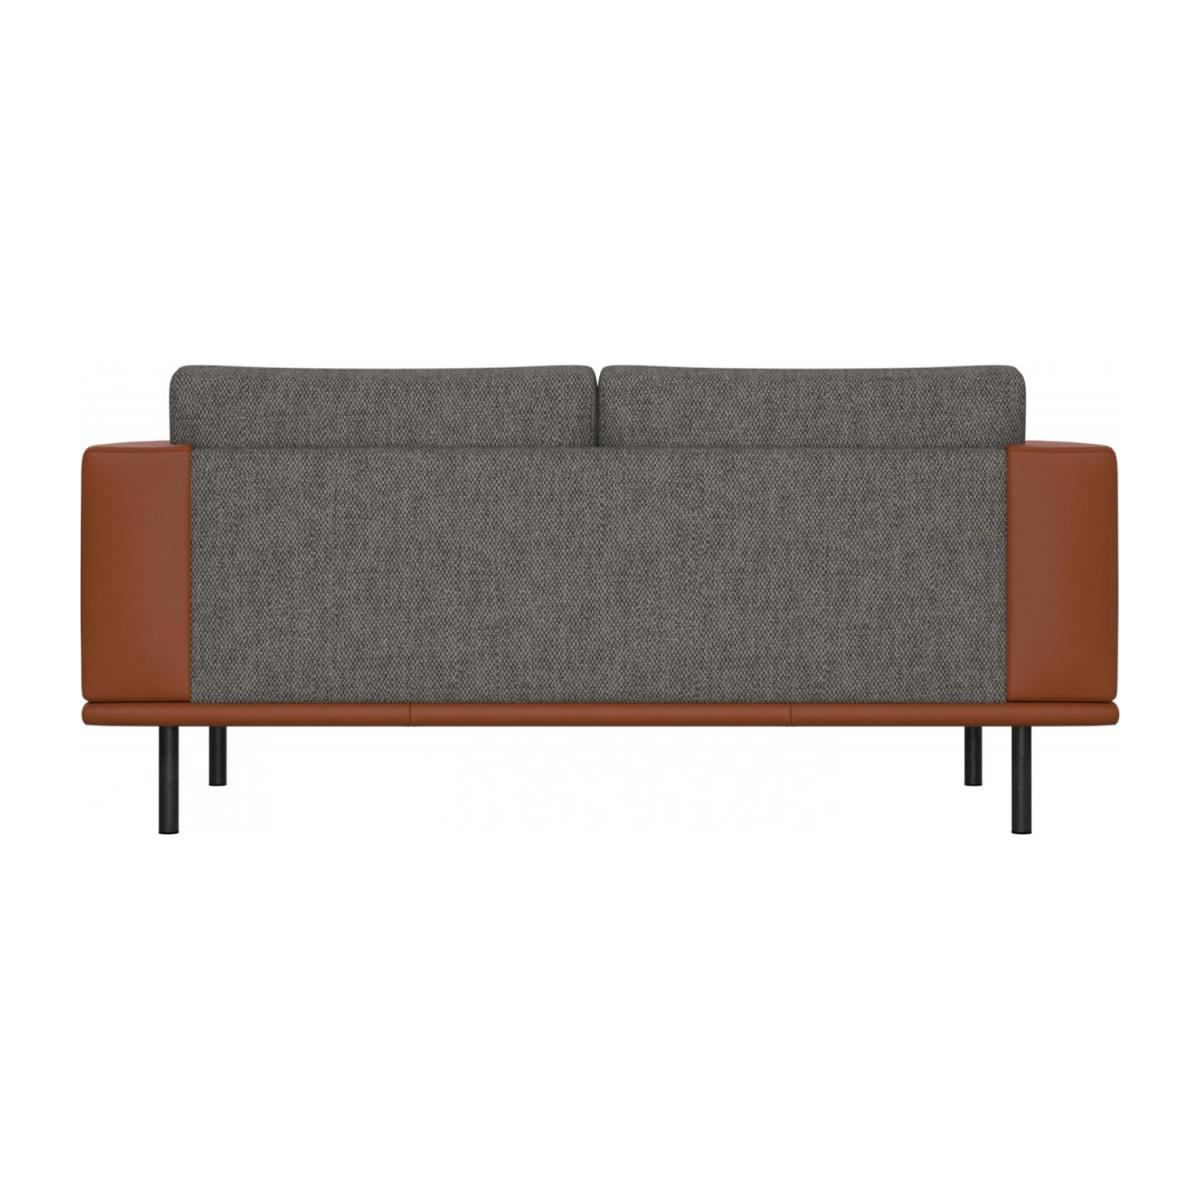 2 seater sofa in Bellagio fabric, night black with base and armrests in brown leather n°3